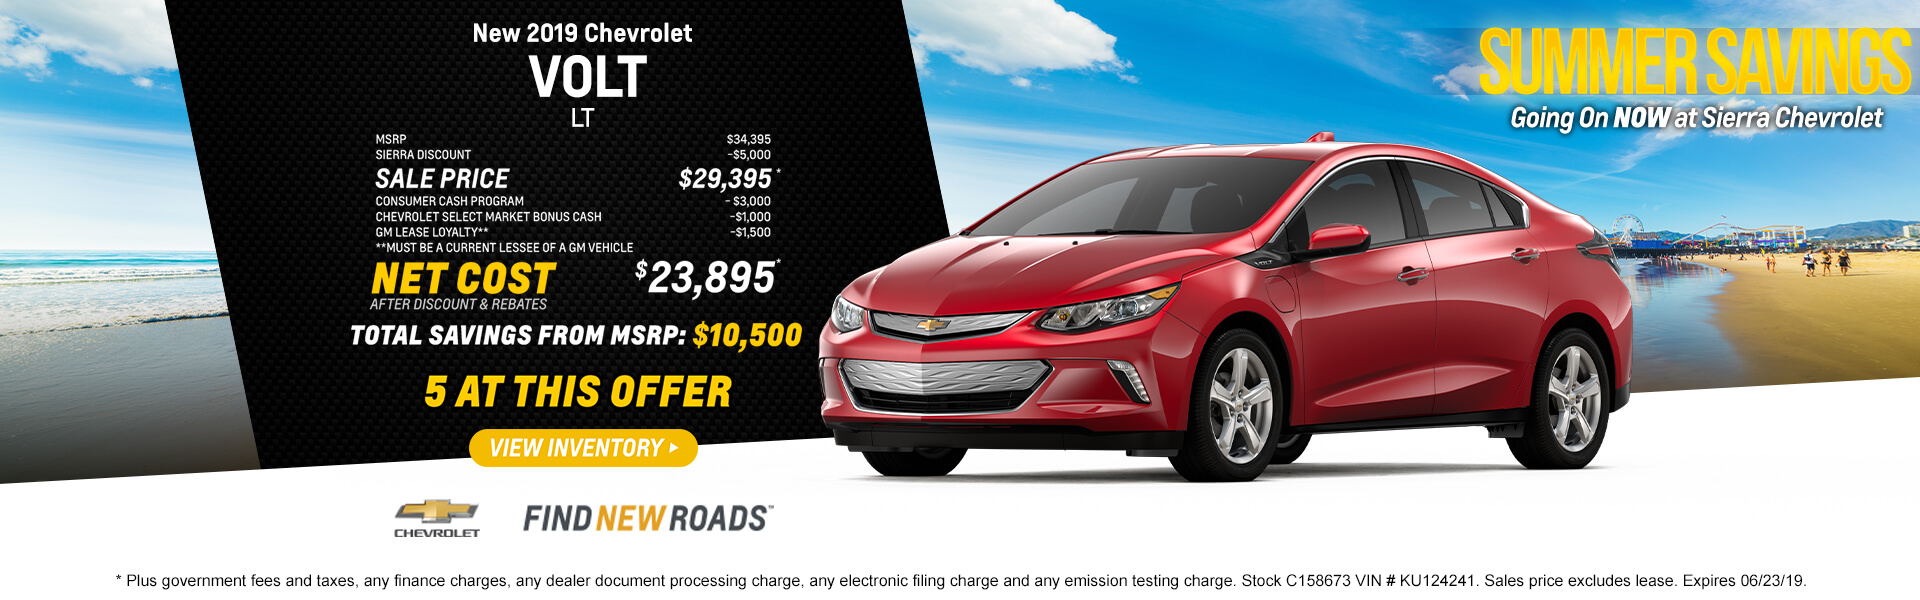 2019 Chevrolet Volt LT  MSRP $34,395 Sierra Discount -$5,000 SALE PRICE $29,395* Consumer Cash -$3,000 Chevrolet Select Market Cash -$1000 GM Lease Loyalty** -$1,500 **Must be a current lessee of a GM vehicle  Net Cost After Discount & Rebates $23,895*  Total Savings from MSPR $10,500  5 AT THIS OFFER   * Plus government fees and taxes, any finance charges, any dealer document processing charge, any electronic filing charge and any emission testing charge. Stock C158673 VIN # KU124241. Sales price excludes lease. Expires 06/23/19.